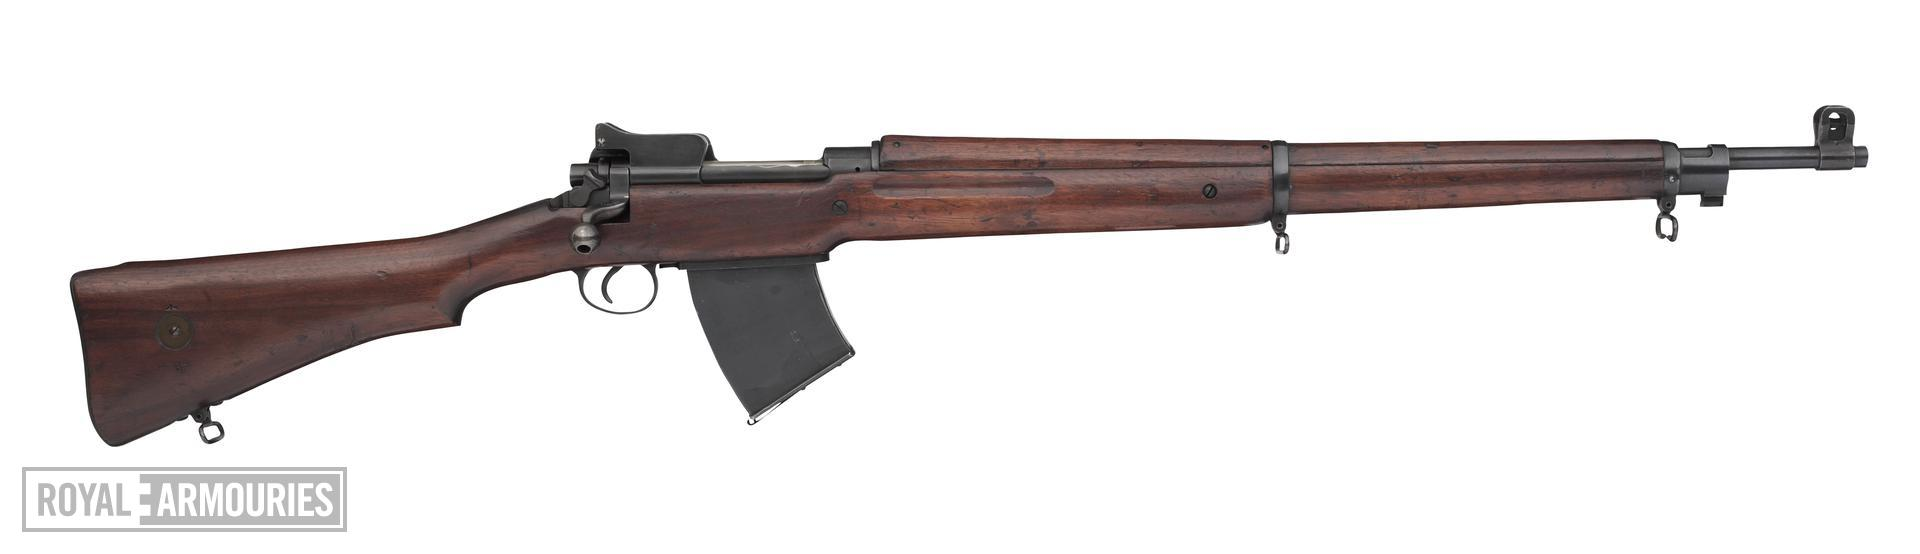 Centrefire bolt-action rifle - Experimental Pattern 1914 Mk.I (W)